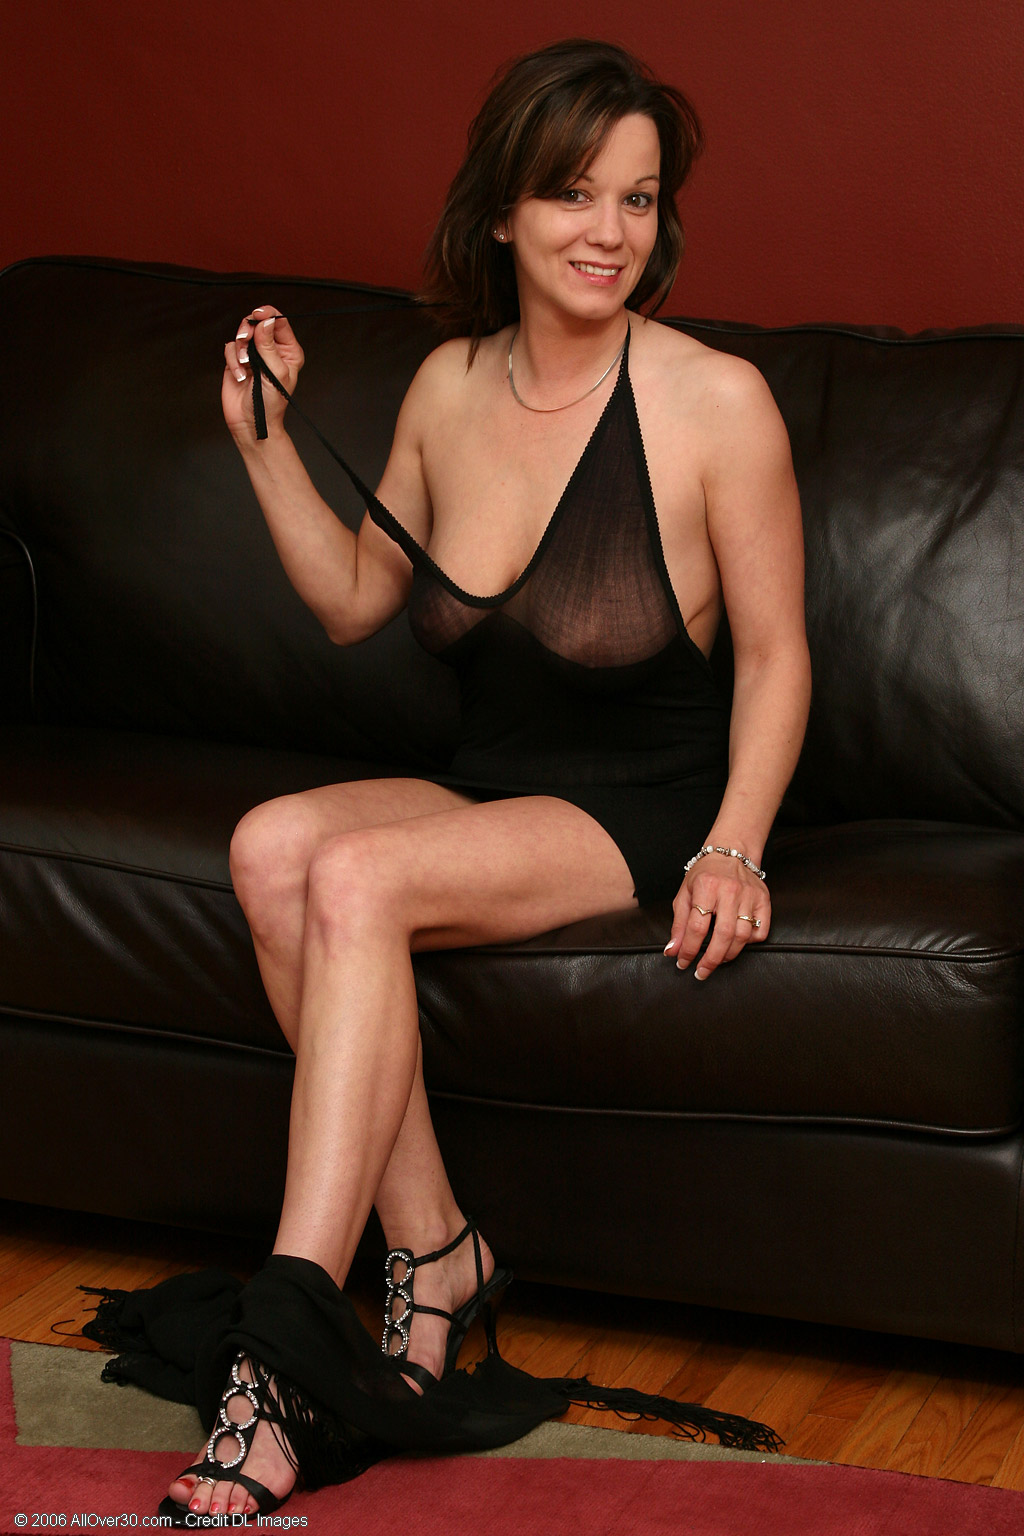 allover30free - high quality mature and milf pictures and movies